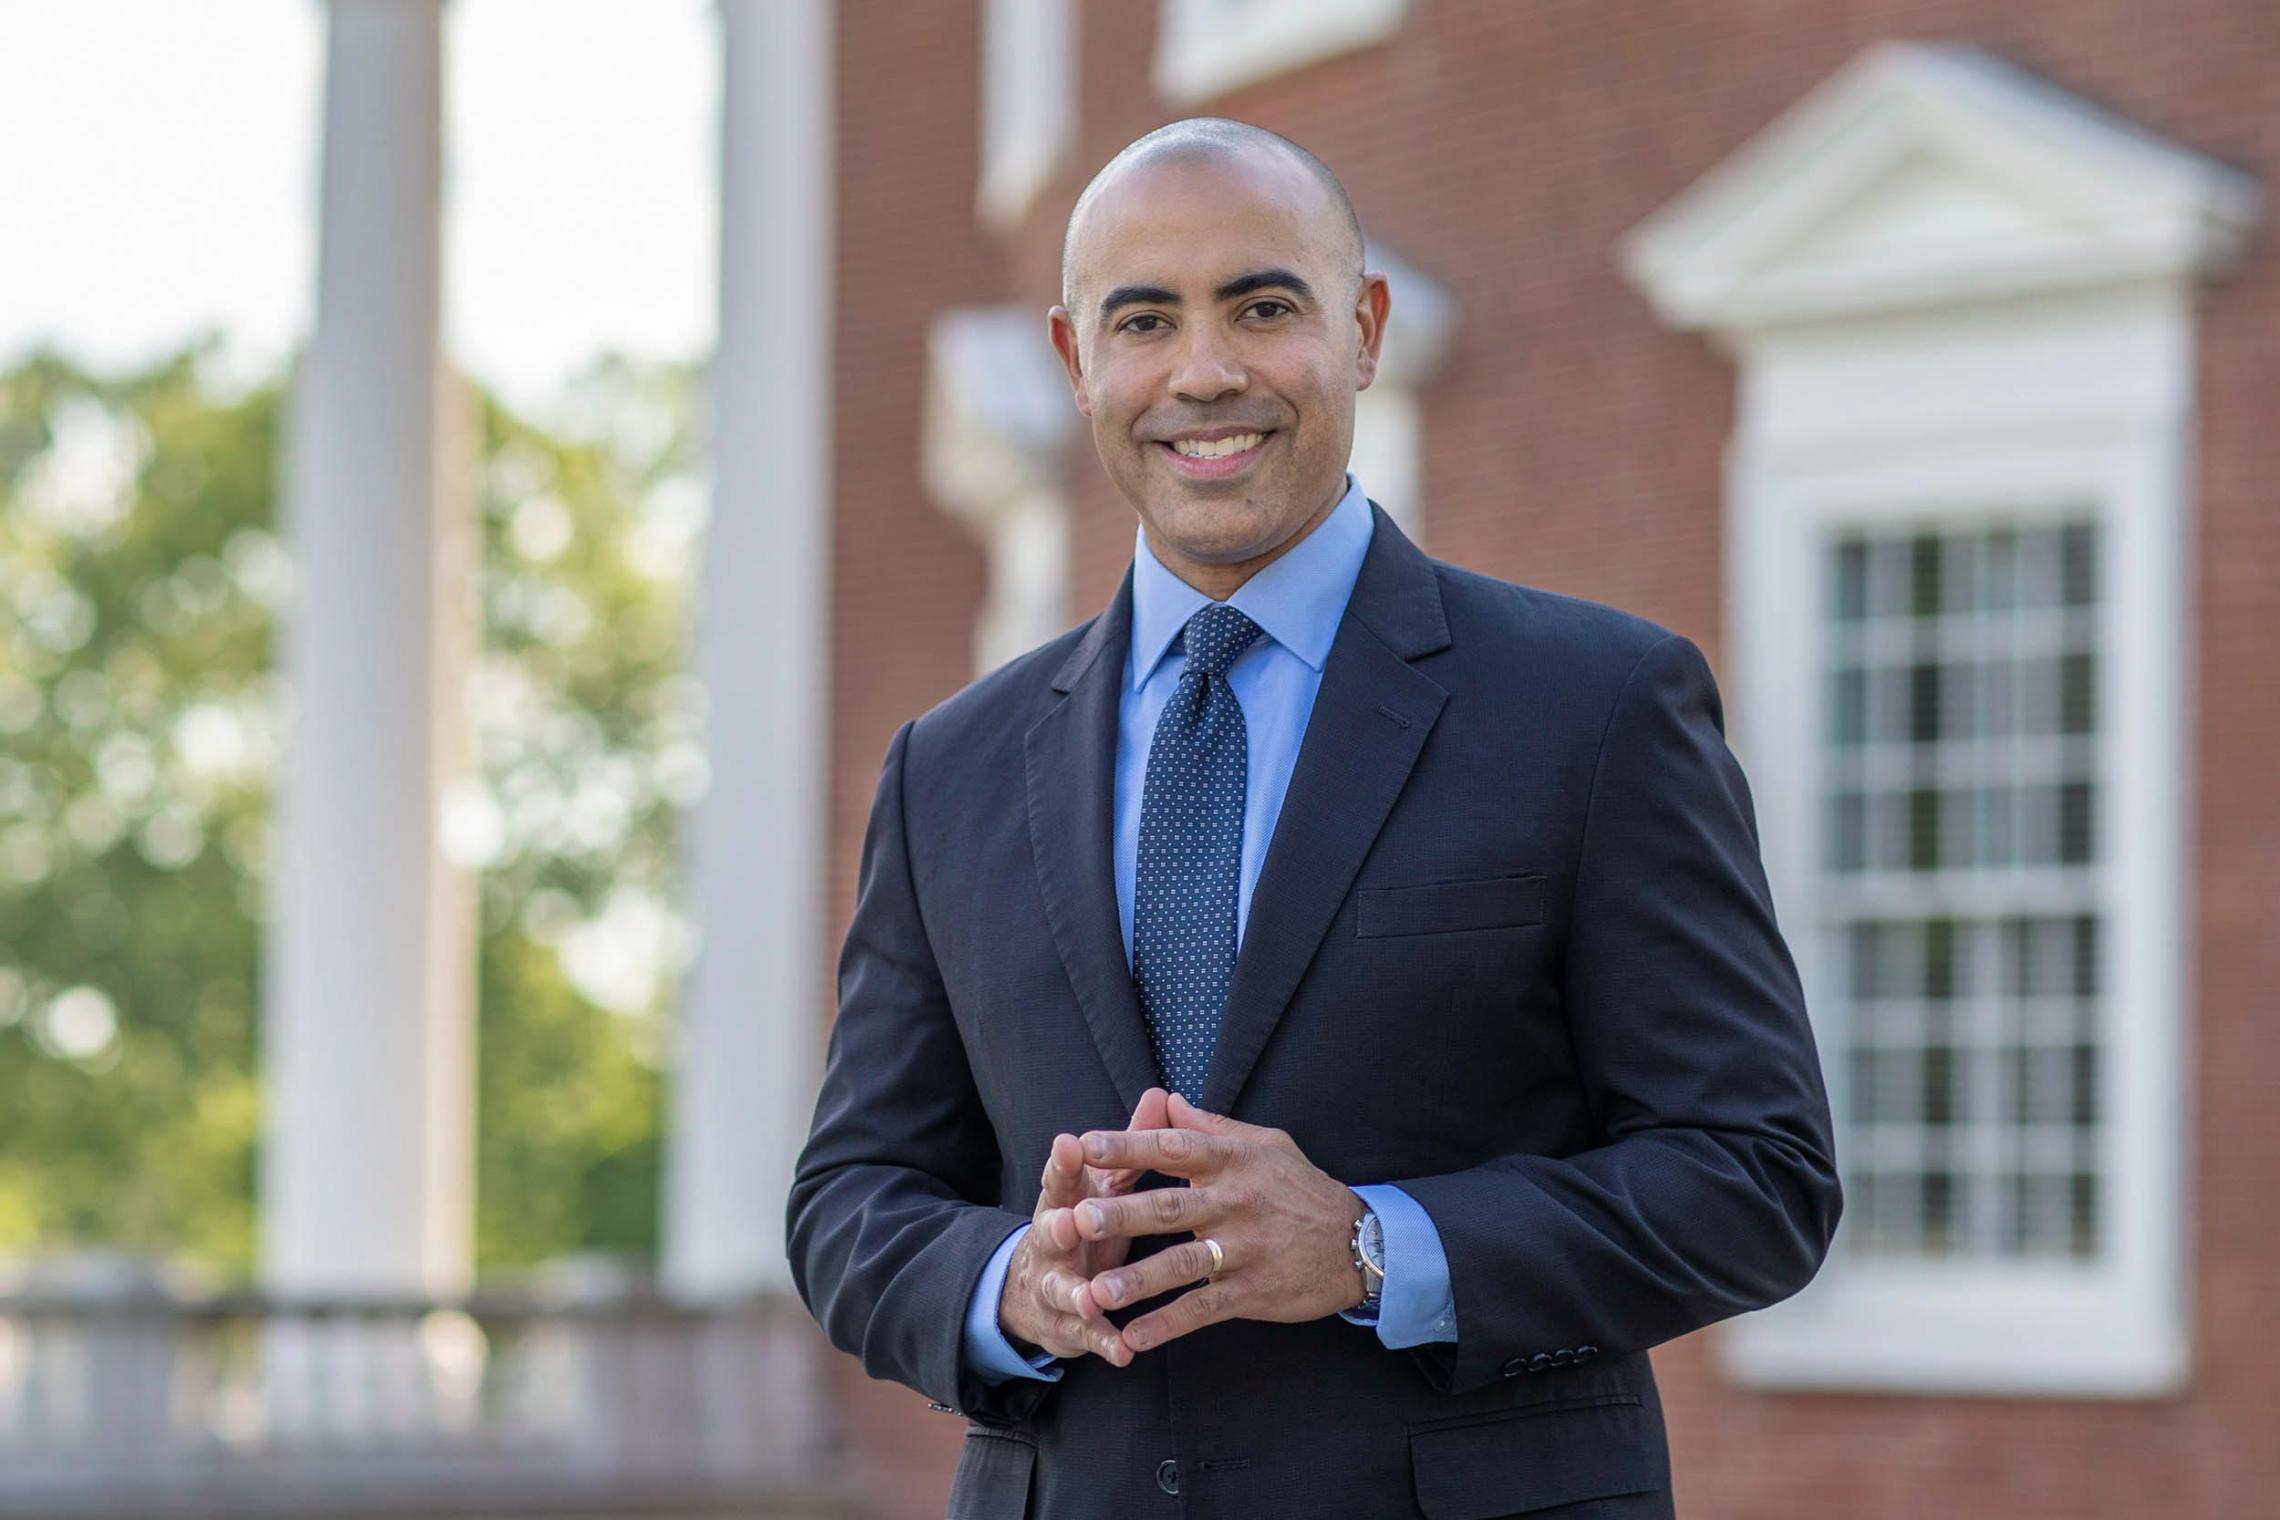 Dean Ian Solomon of the Frank Batten School of Leadership and Public Policy sees the school's mission as improving lives through enlightened leadership and effective public policy.